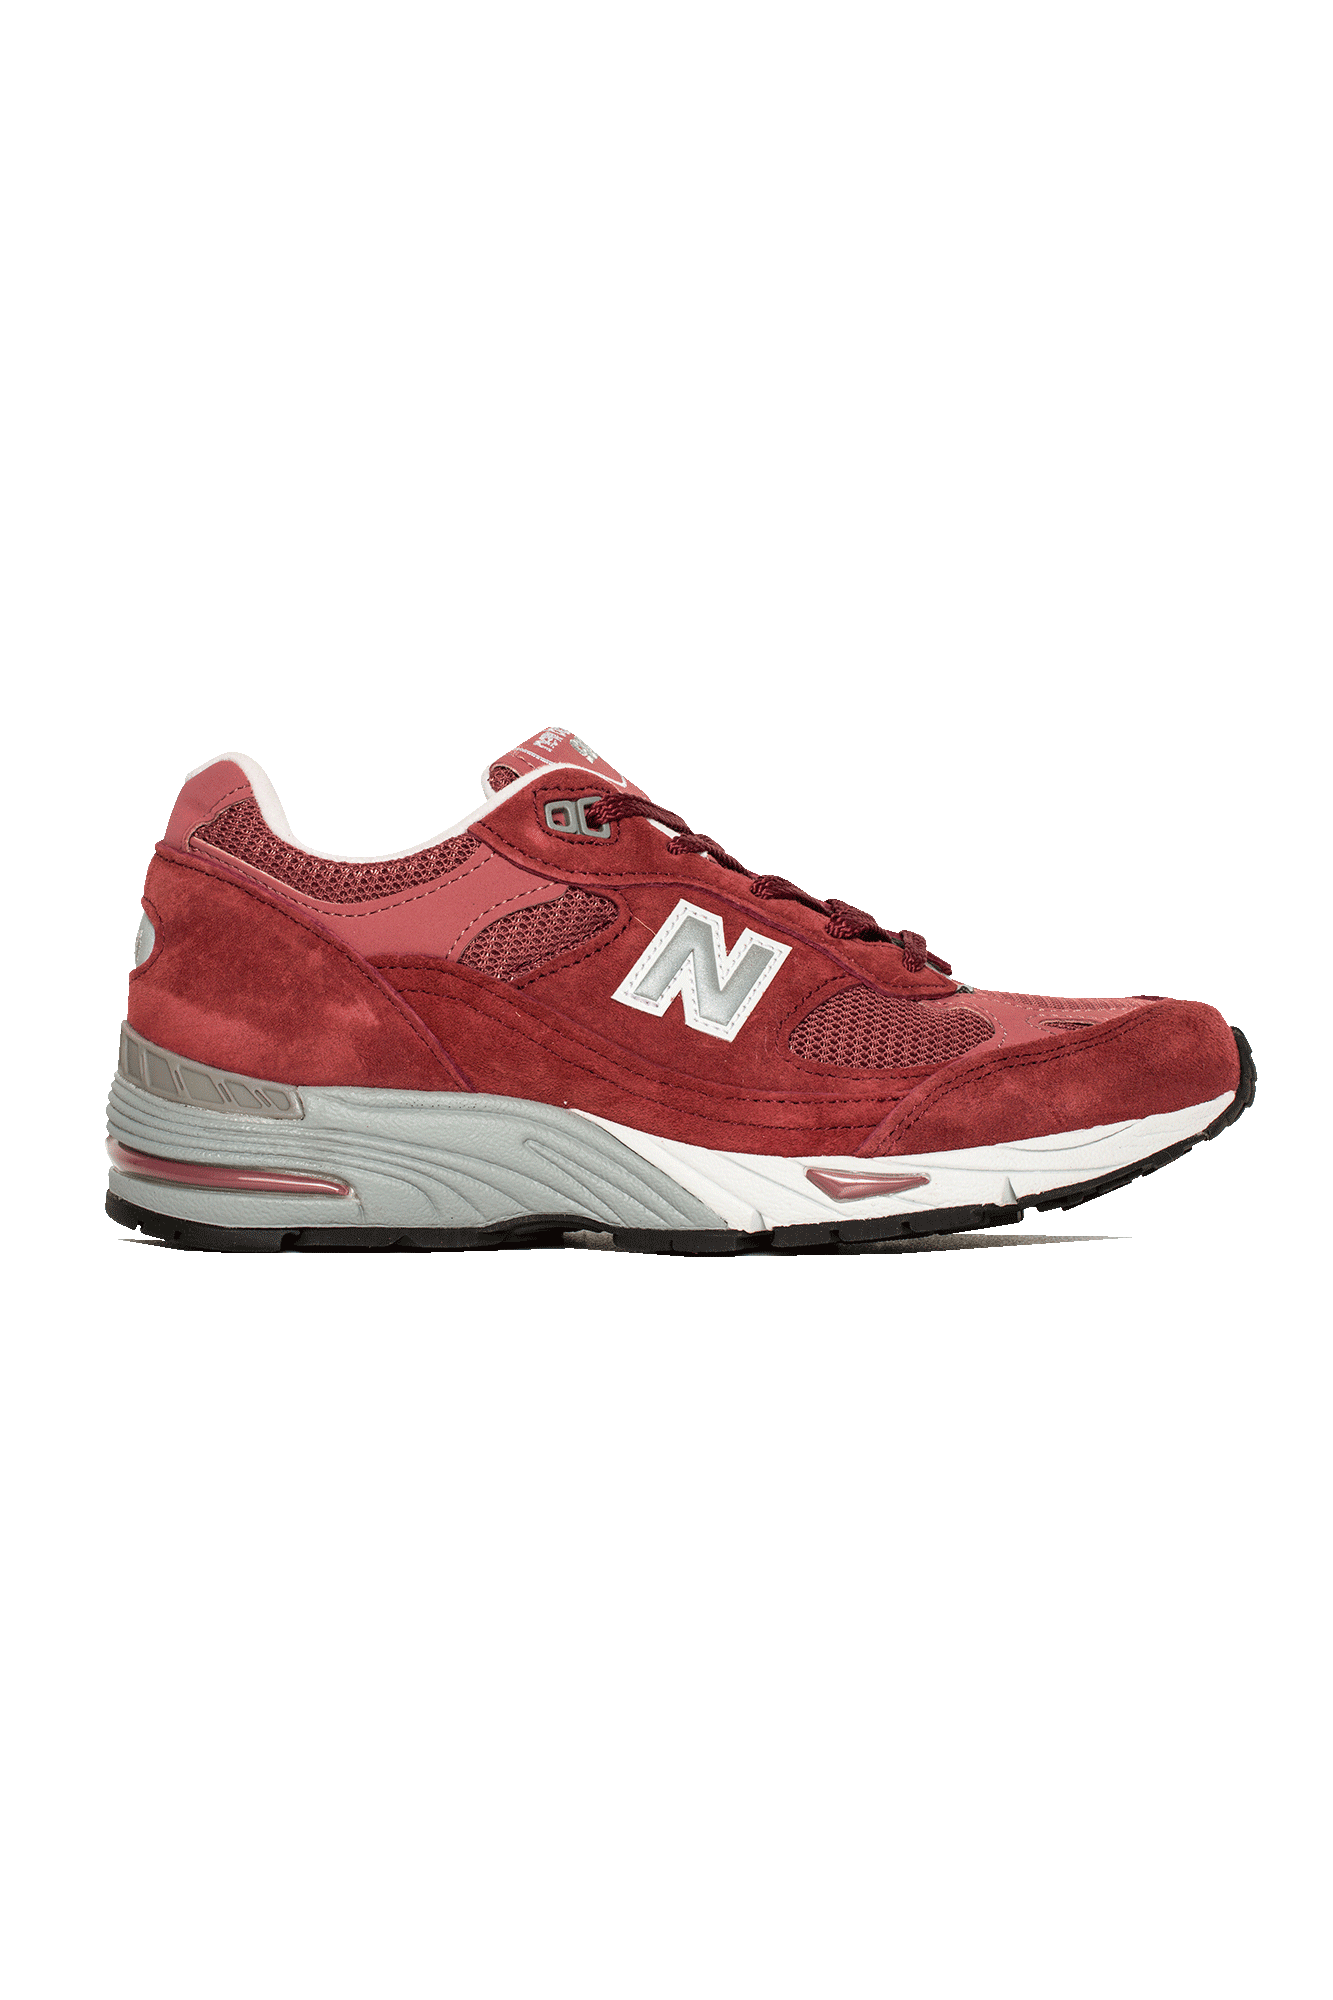 New Balance Sneakers 991 Rosa W991DR#000#C0011#6 - One Block Down